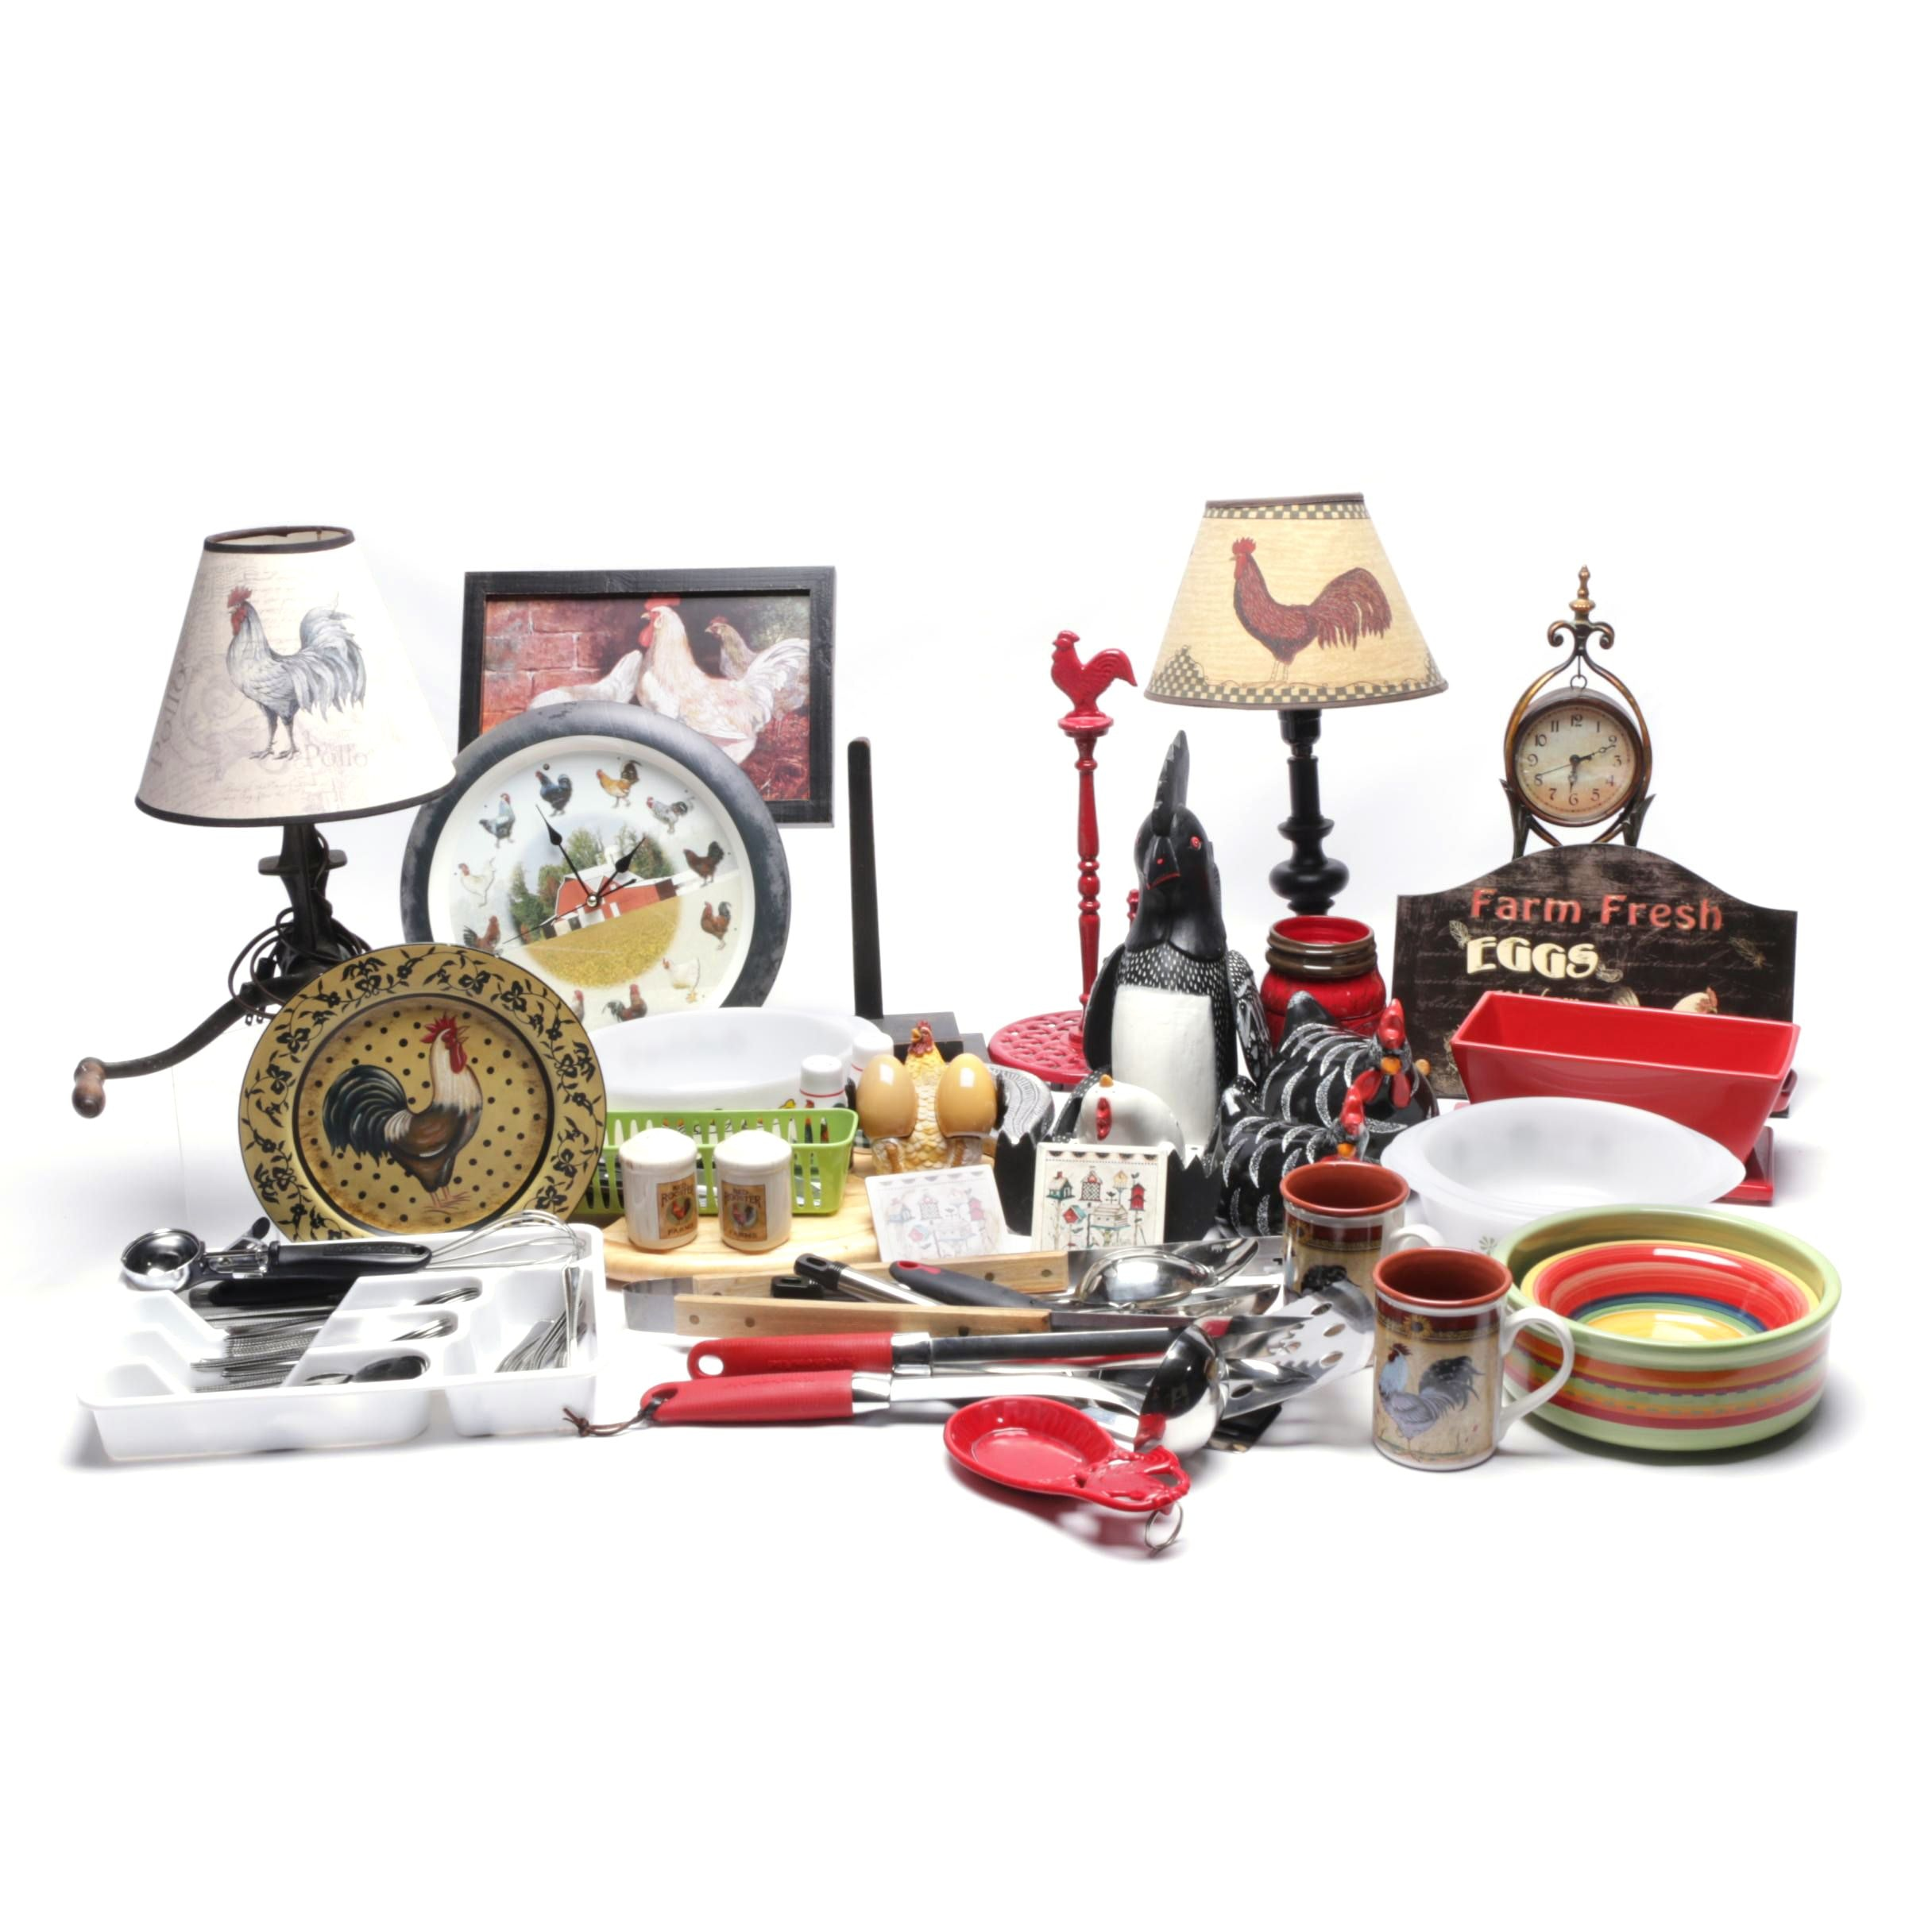 Rooster Decor and Kitchenware Including Kitchenaid and Anchor Hawking